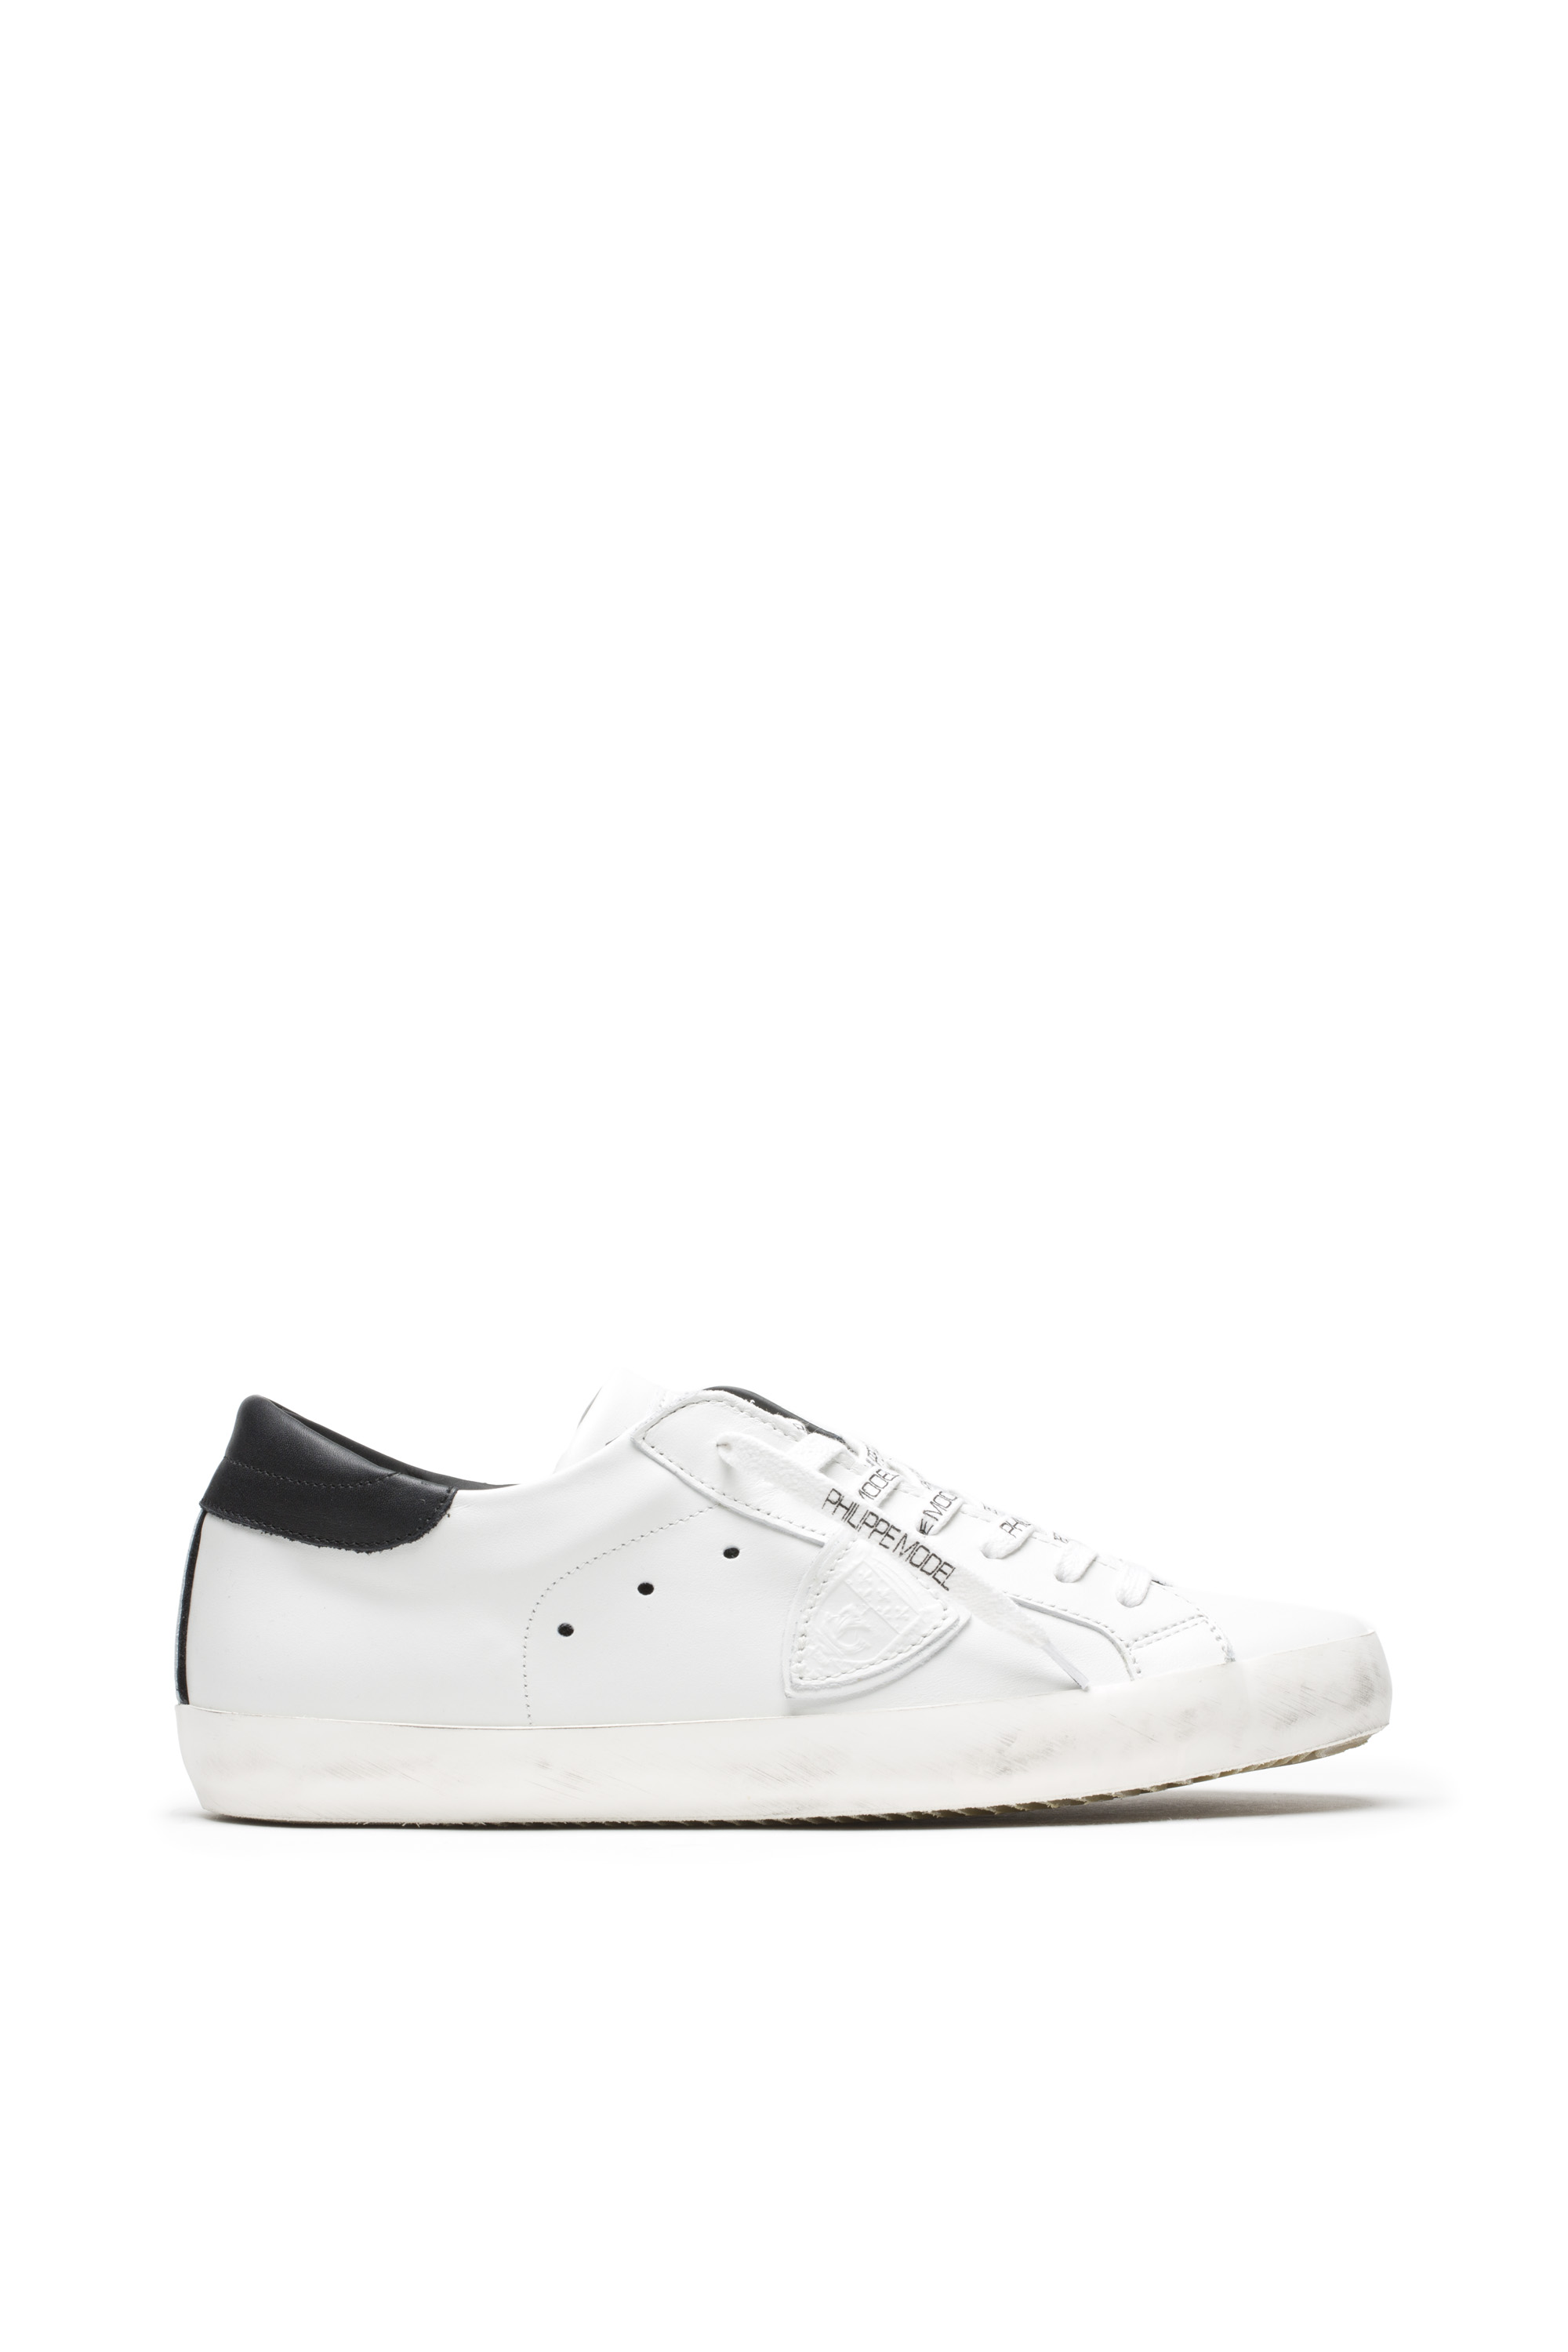 bd711c01cd Sneakers PHILIPPE MODEL CLLUV003